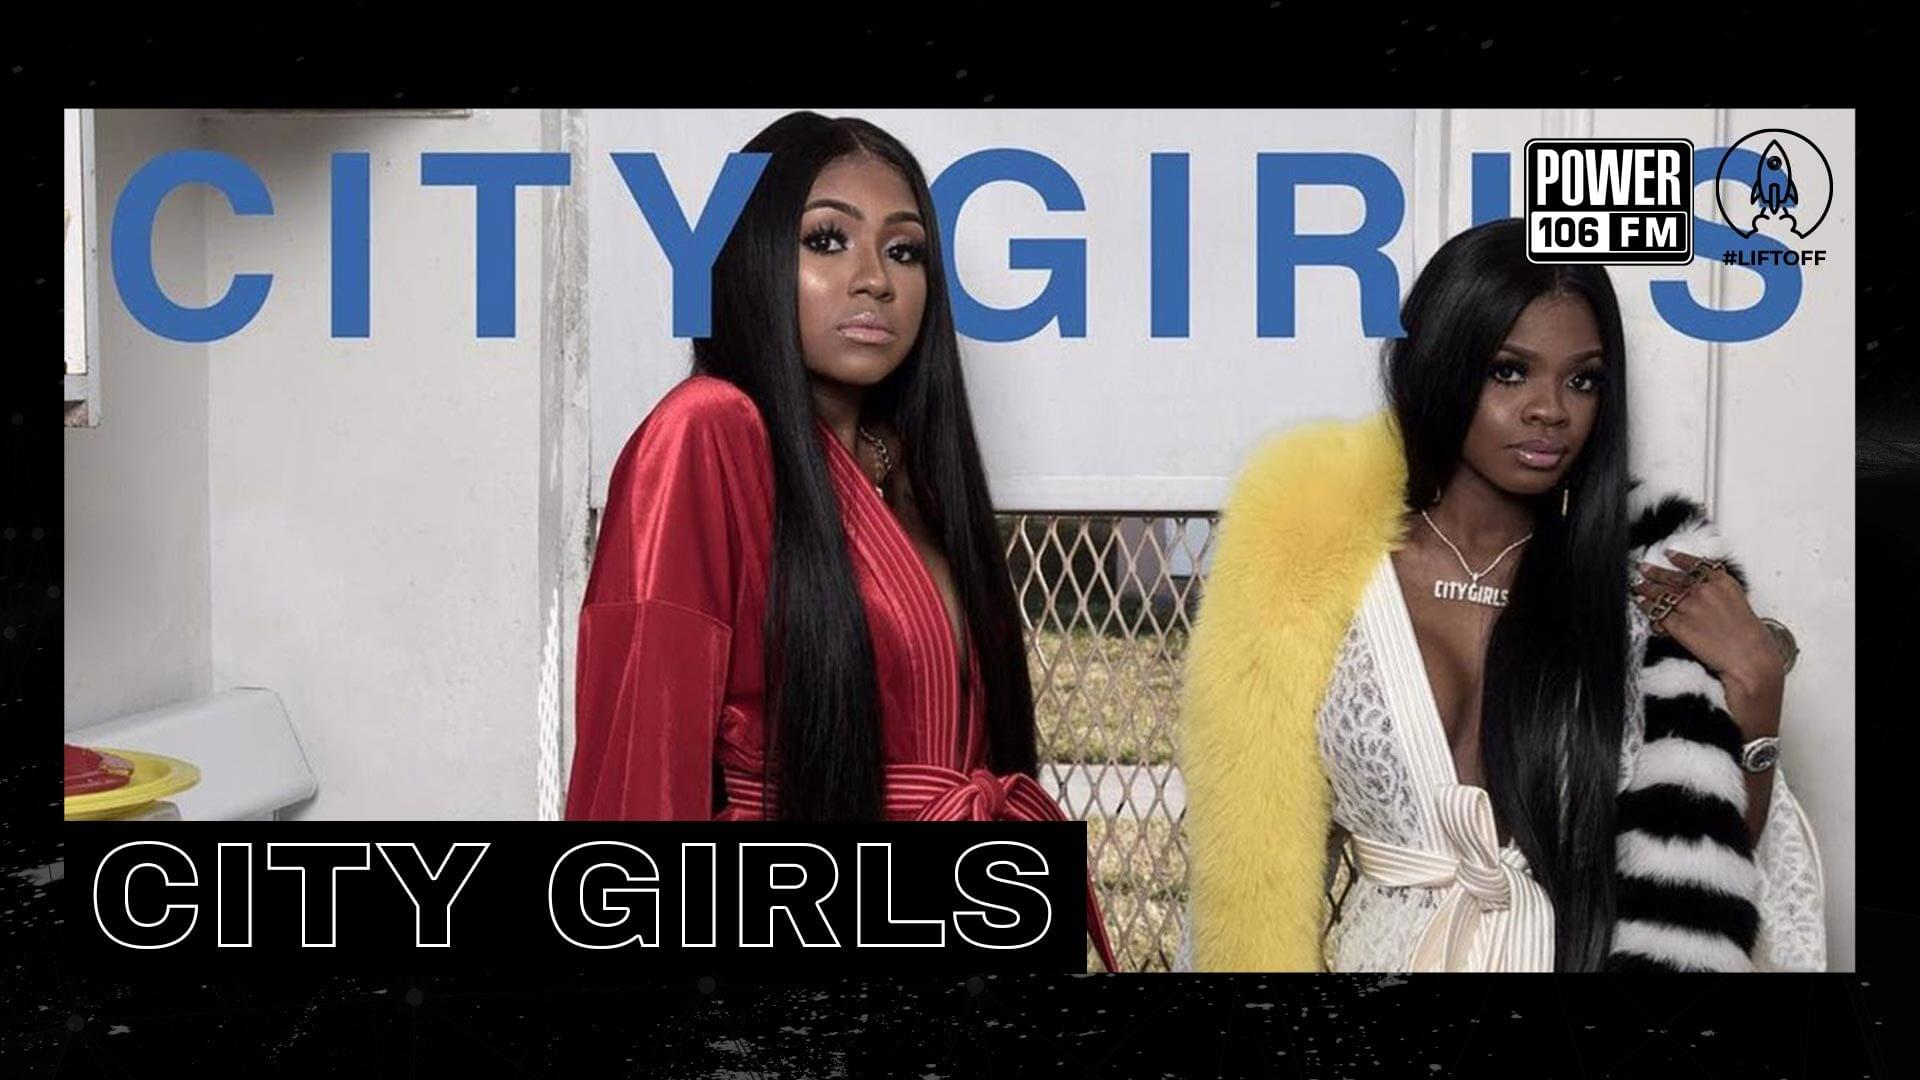 City Girls Respond To Double Standards In Rap Lyrics & Why They Don't Care About Male Opinions